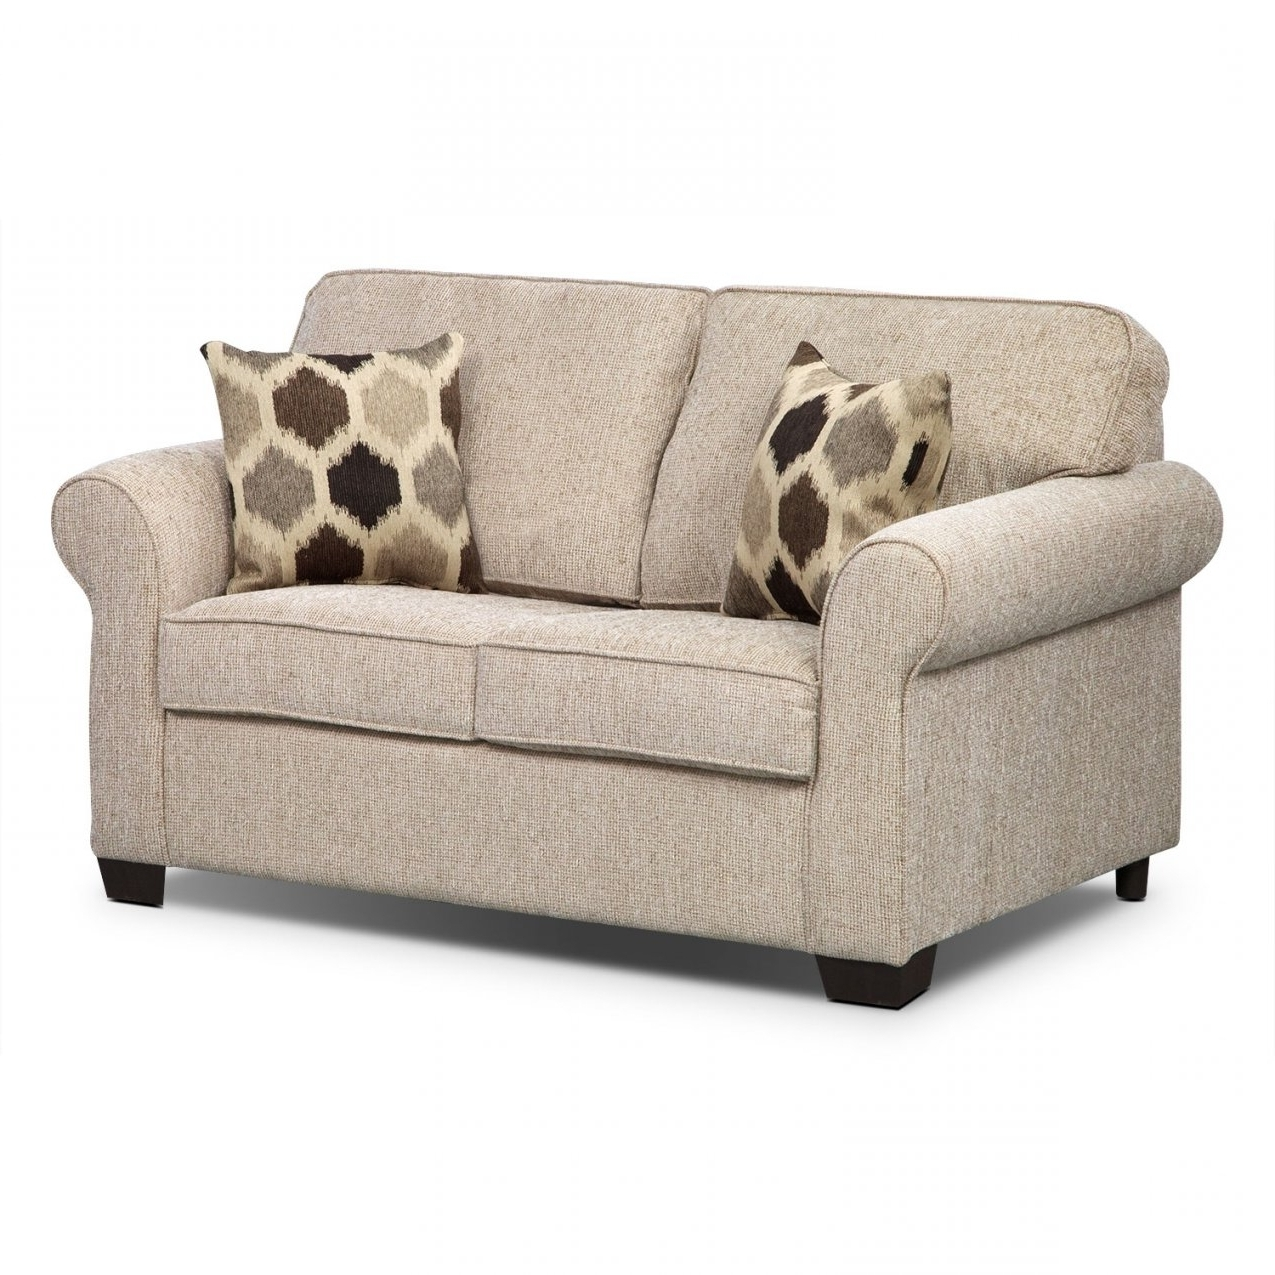 Current Furniture 45+ Singular Twin Sleeper Chair Photos Ideas Size With Within Twin Sleeper Sofa Chairs (View 2 of 20)